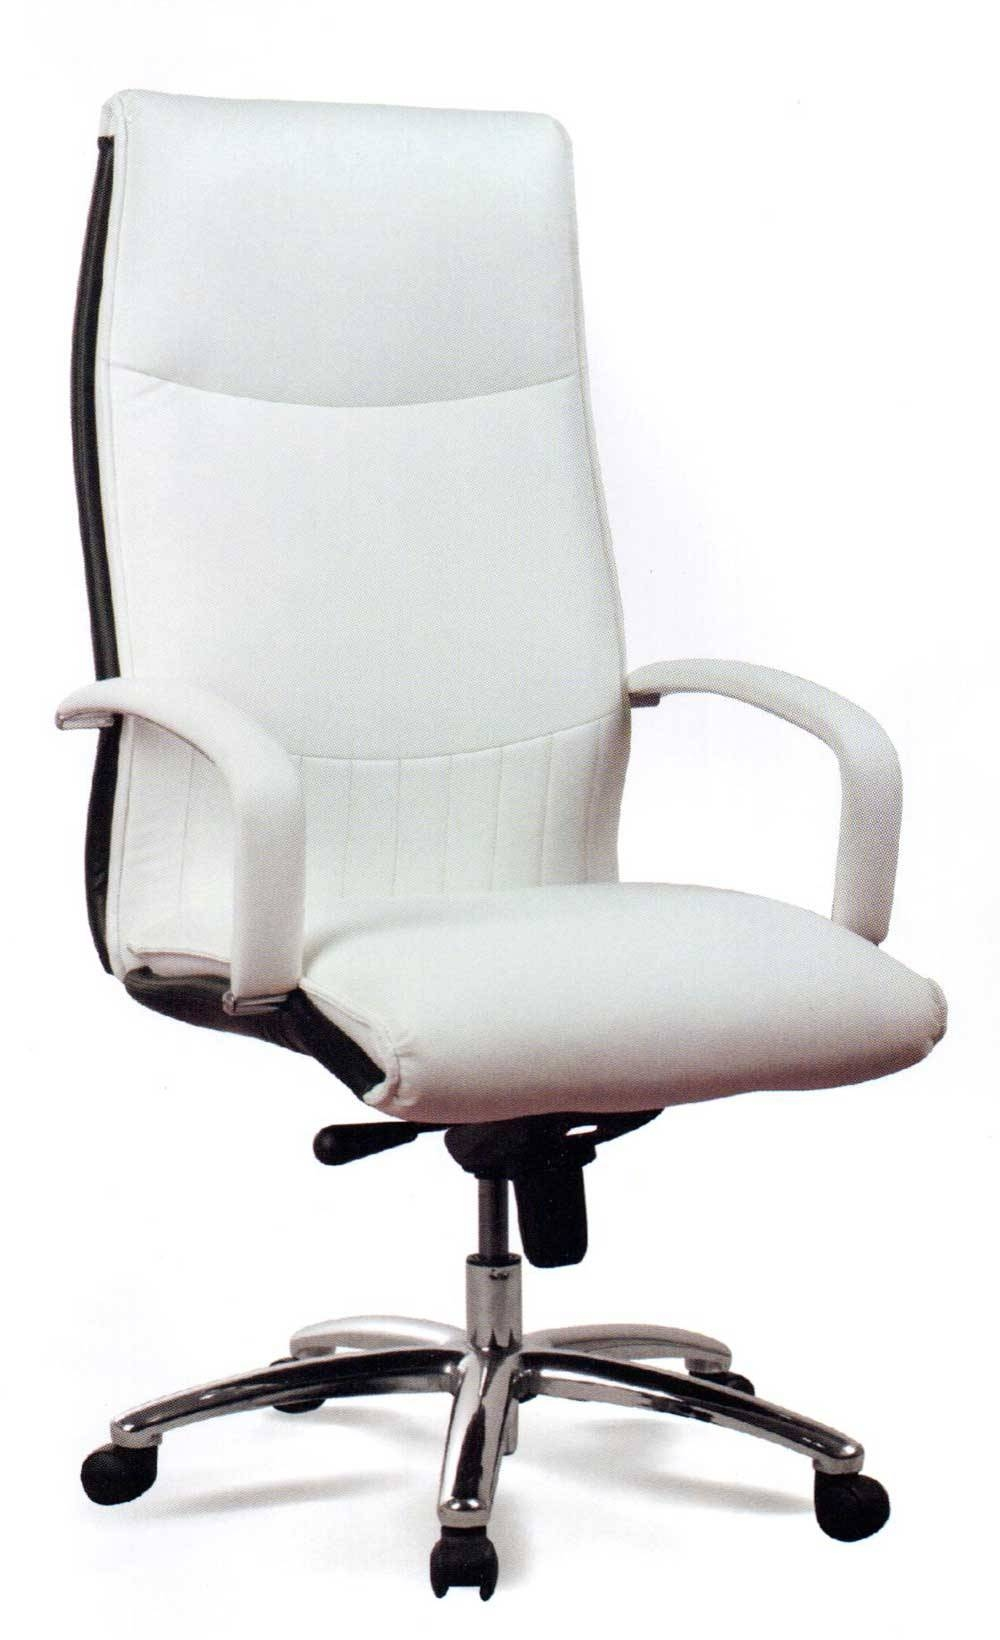 Sofa White Ergonomic Office Chairs | Winafrica intended for Sofa Desk Chairs (Image 13 of 15)